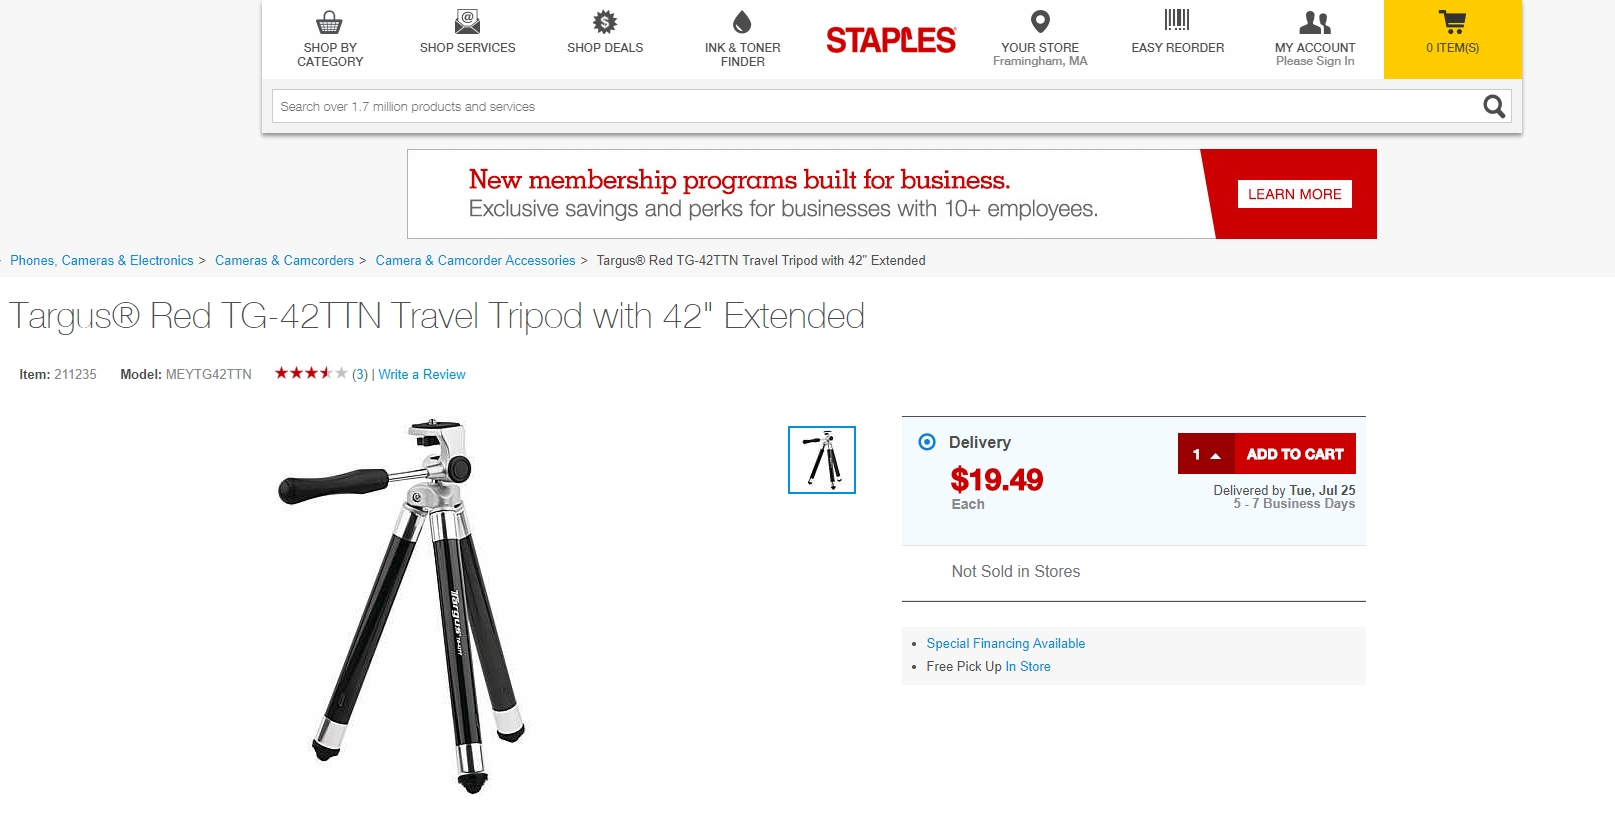 Staples coupons uk